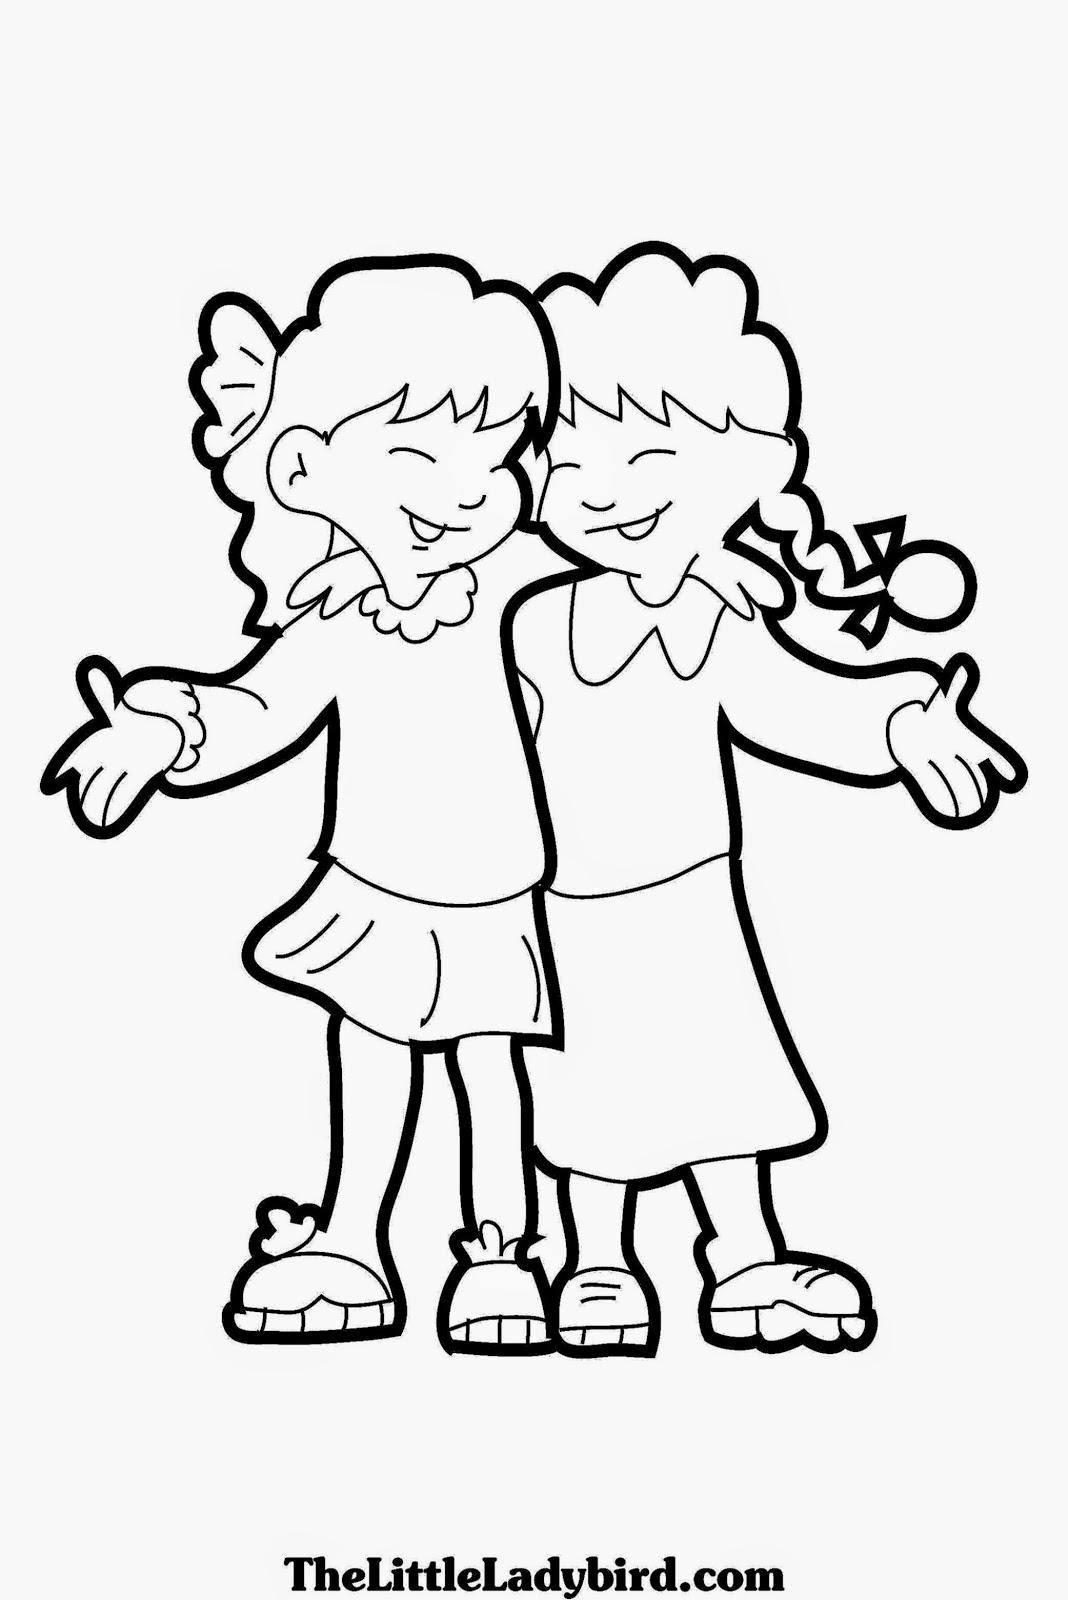 Friendship Coloring Sheets Free Coloring Sheet Friendship Colouring Pages